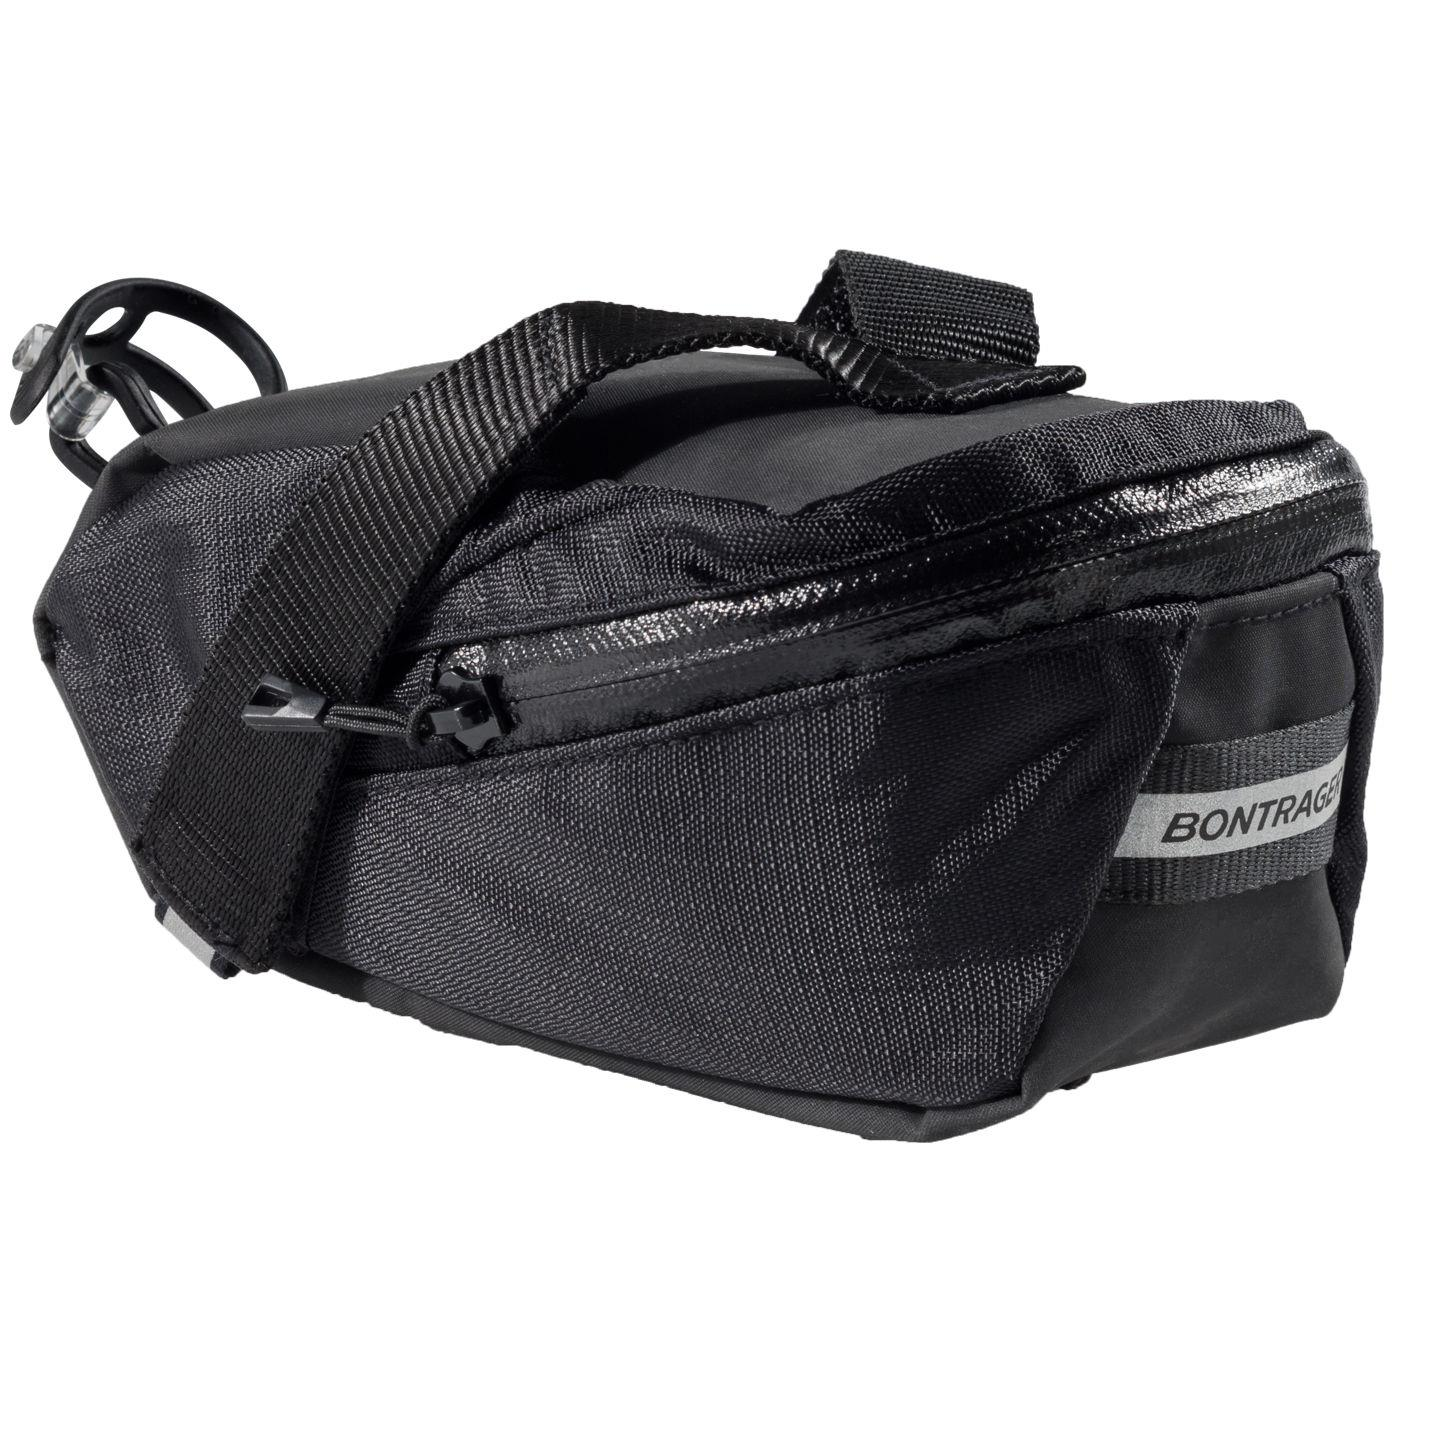 Bontrager Seat Pack Elite Large